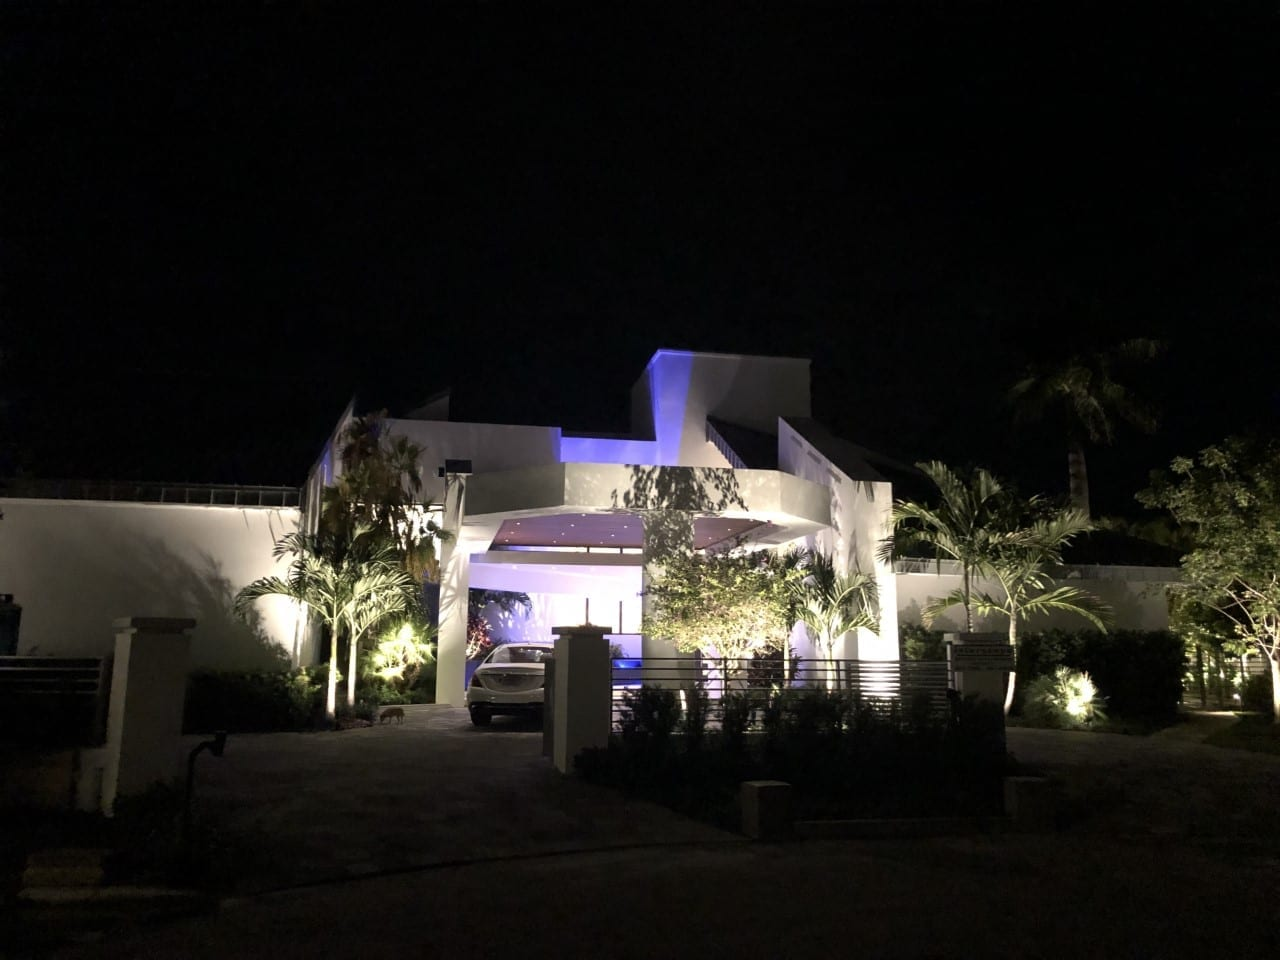 Miami - Biscayne Bay - Residential Landscape Lighting